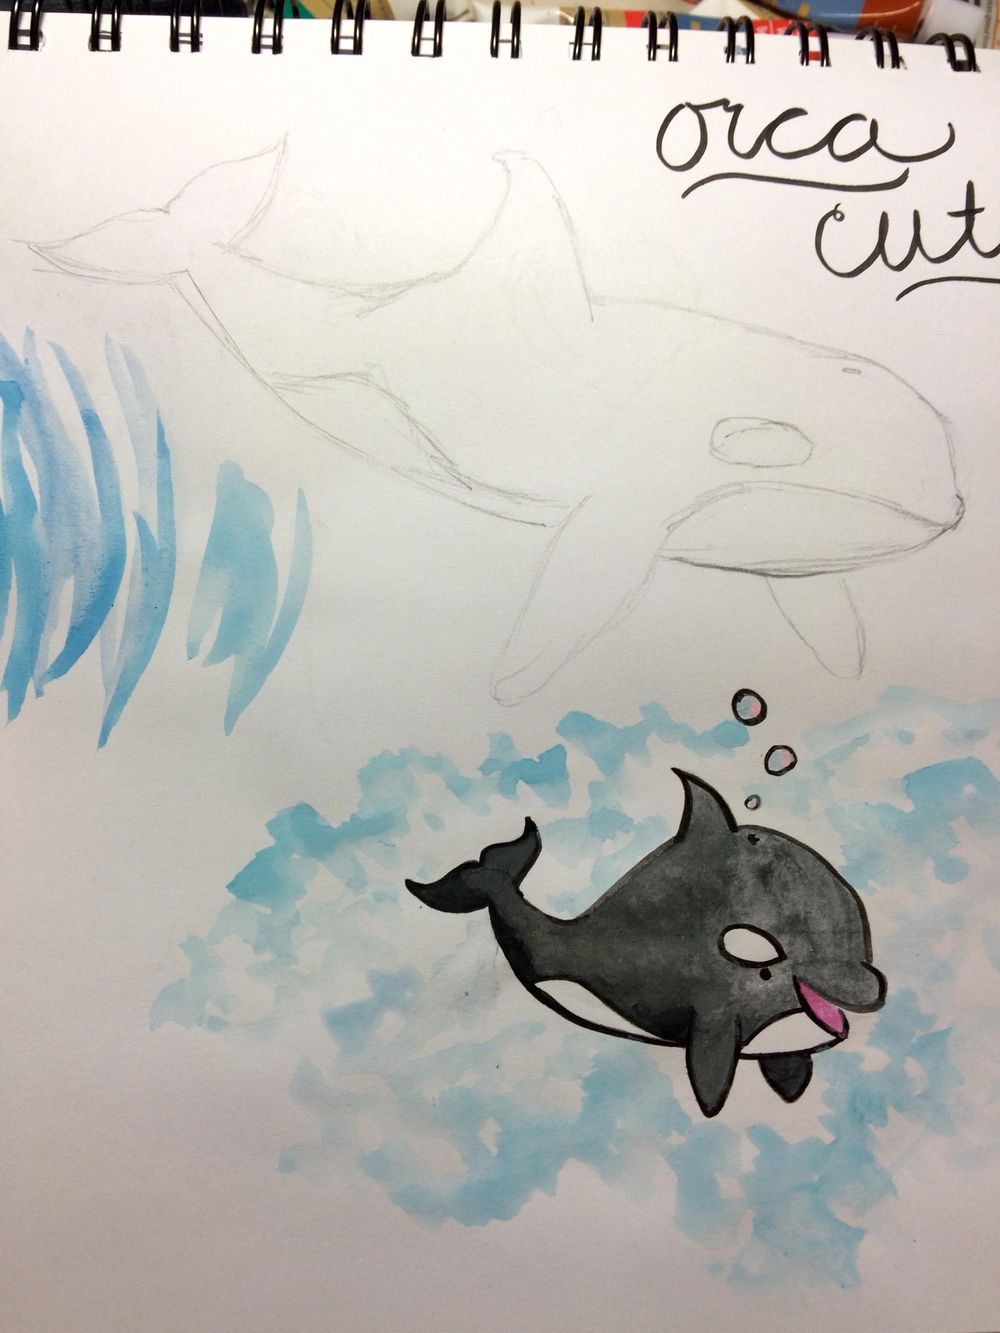 Guinea Pig & Killer Whale Cuties - image 2 - student project